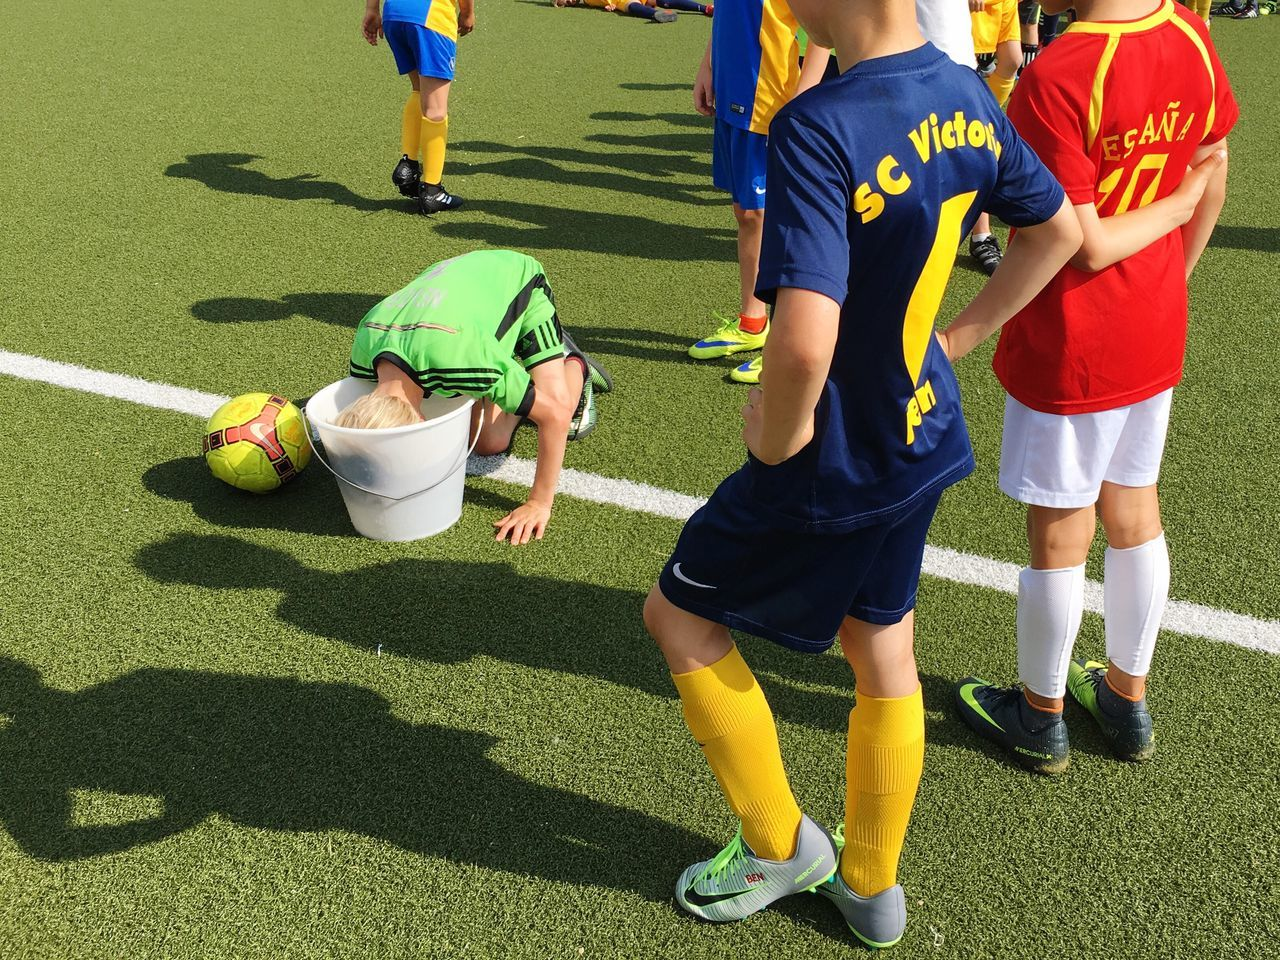 Refreshment... Soccer Boys Soccer Player Three People Soccer Field Sports Uniform Sport Day Soccer Uniform Green Color Grass Teamwork Childhood Outdoors Match - Sport People Strategy Standing Low Section